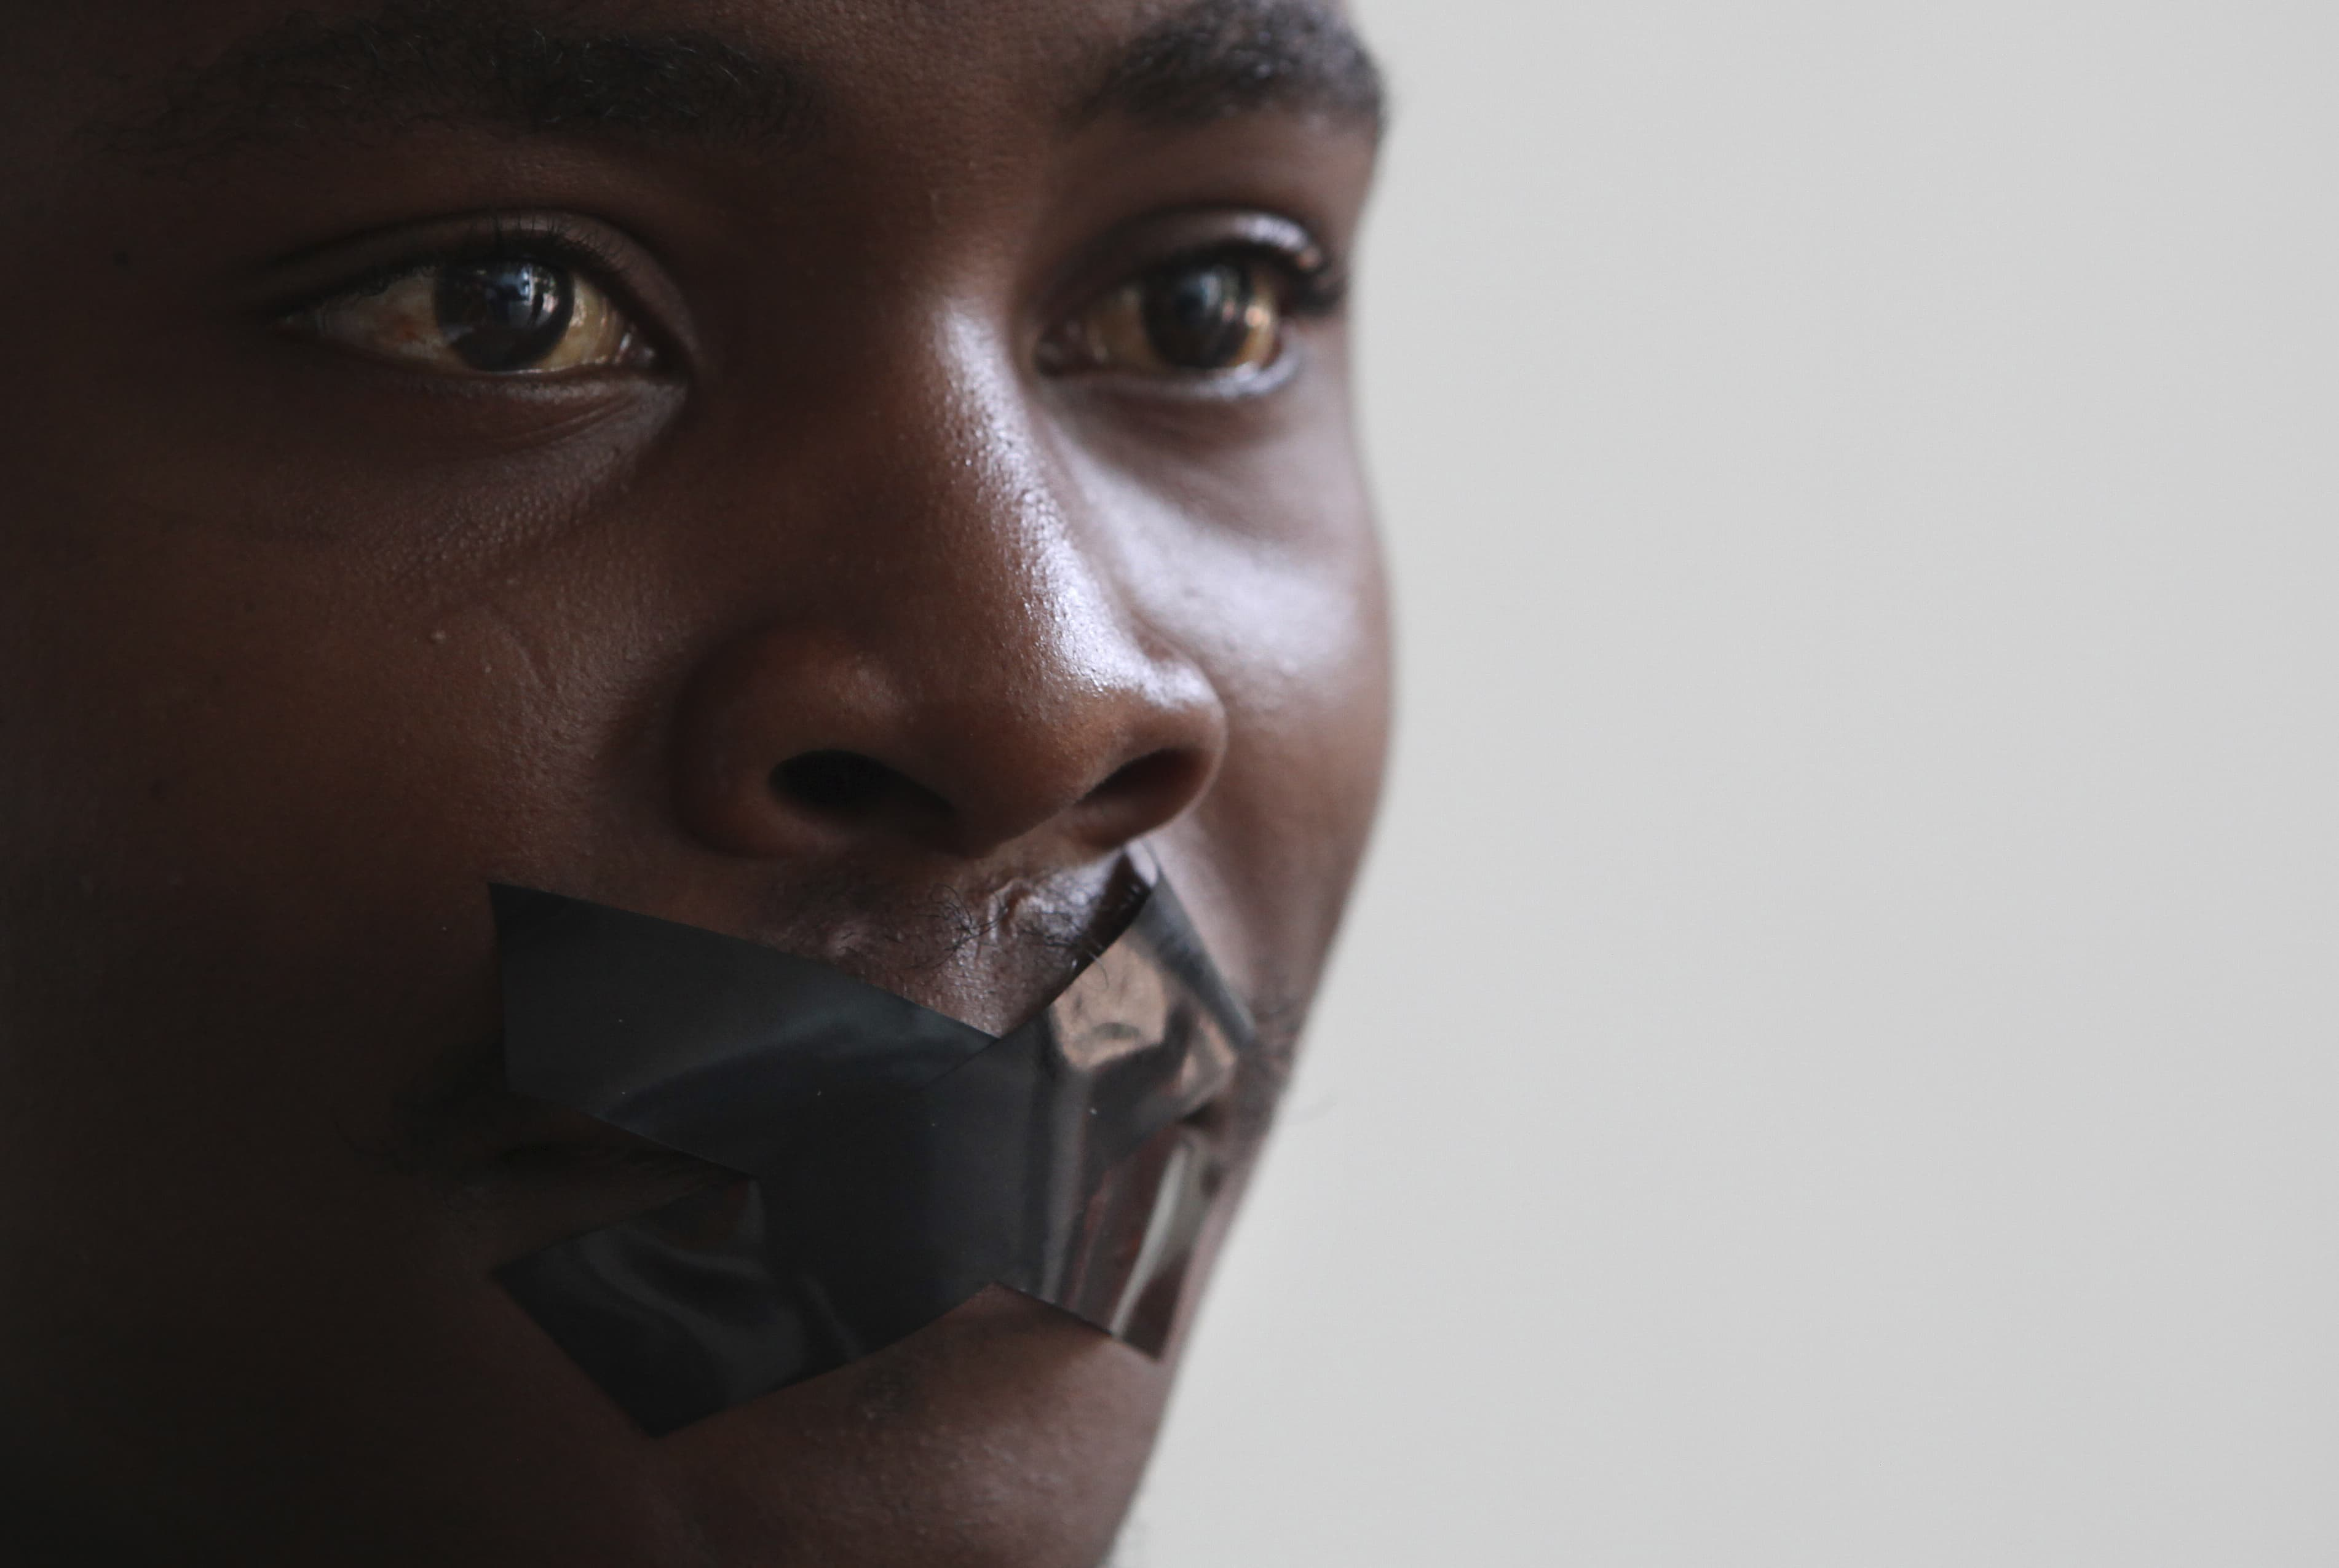 A South African journalist takes part in a 26 February 2014 protest in Johannesburg against the arrest of an Al Jazeera crew in Egypt, AP Photo/Denis Farrell